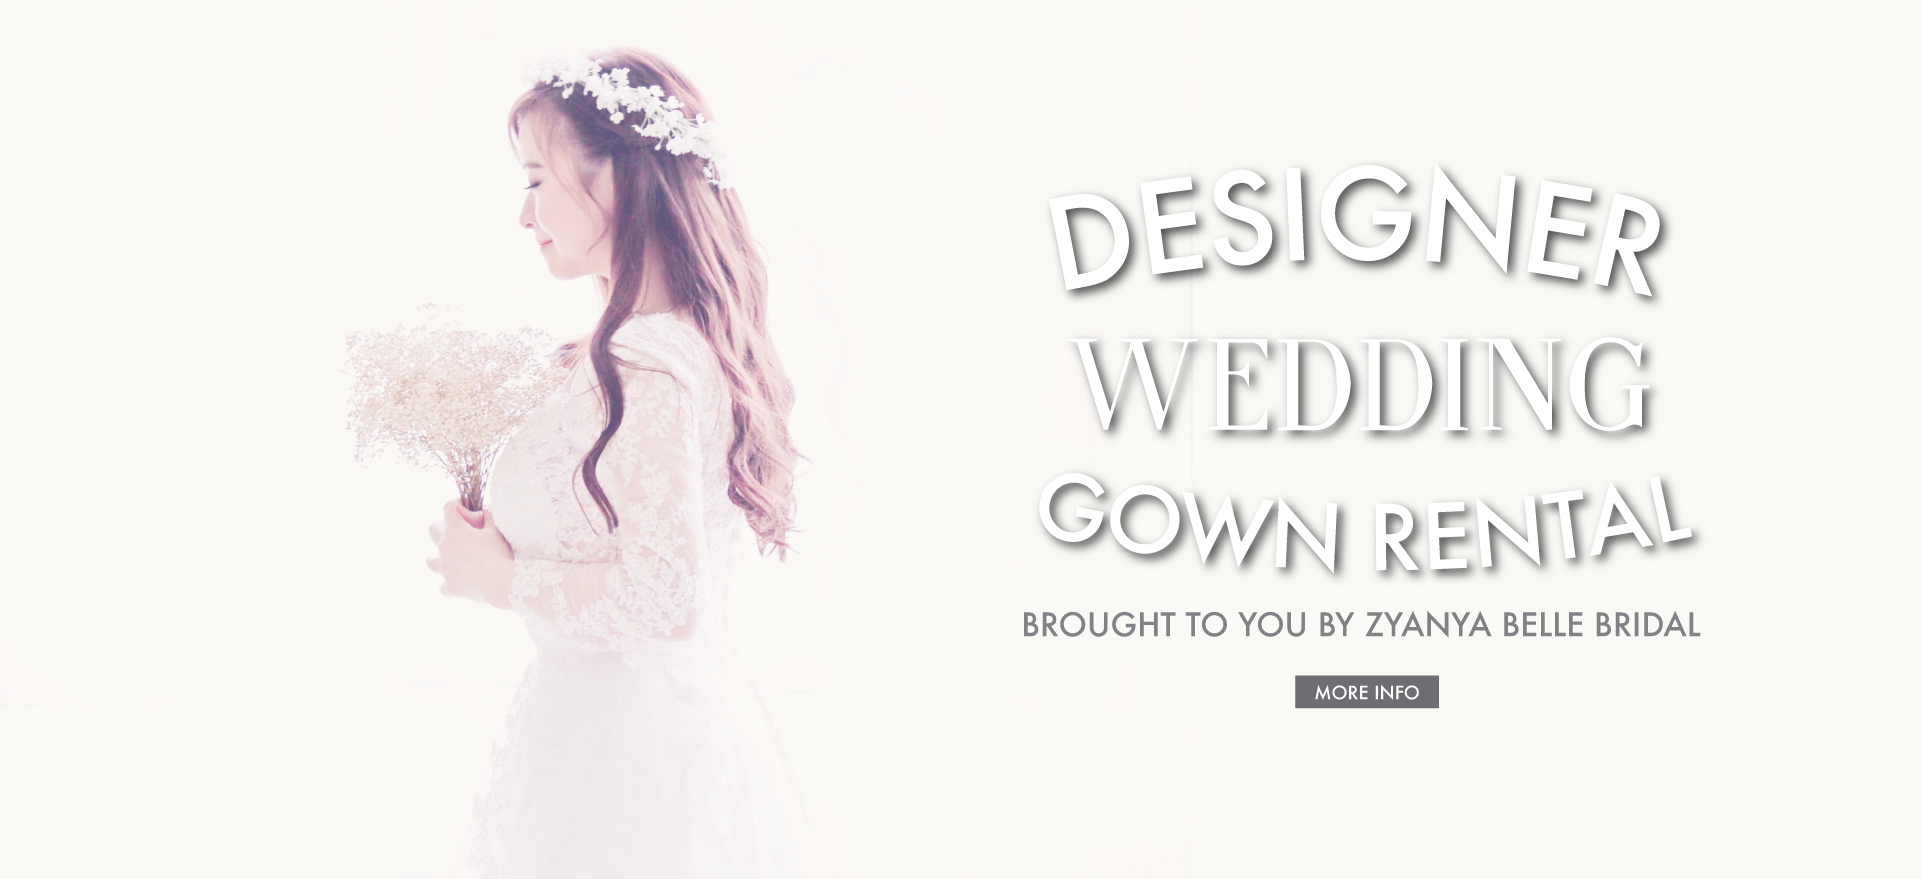 Designer Wedding Gown Rental Campaign Brought to you by Zyanya Belle Bridal